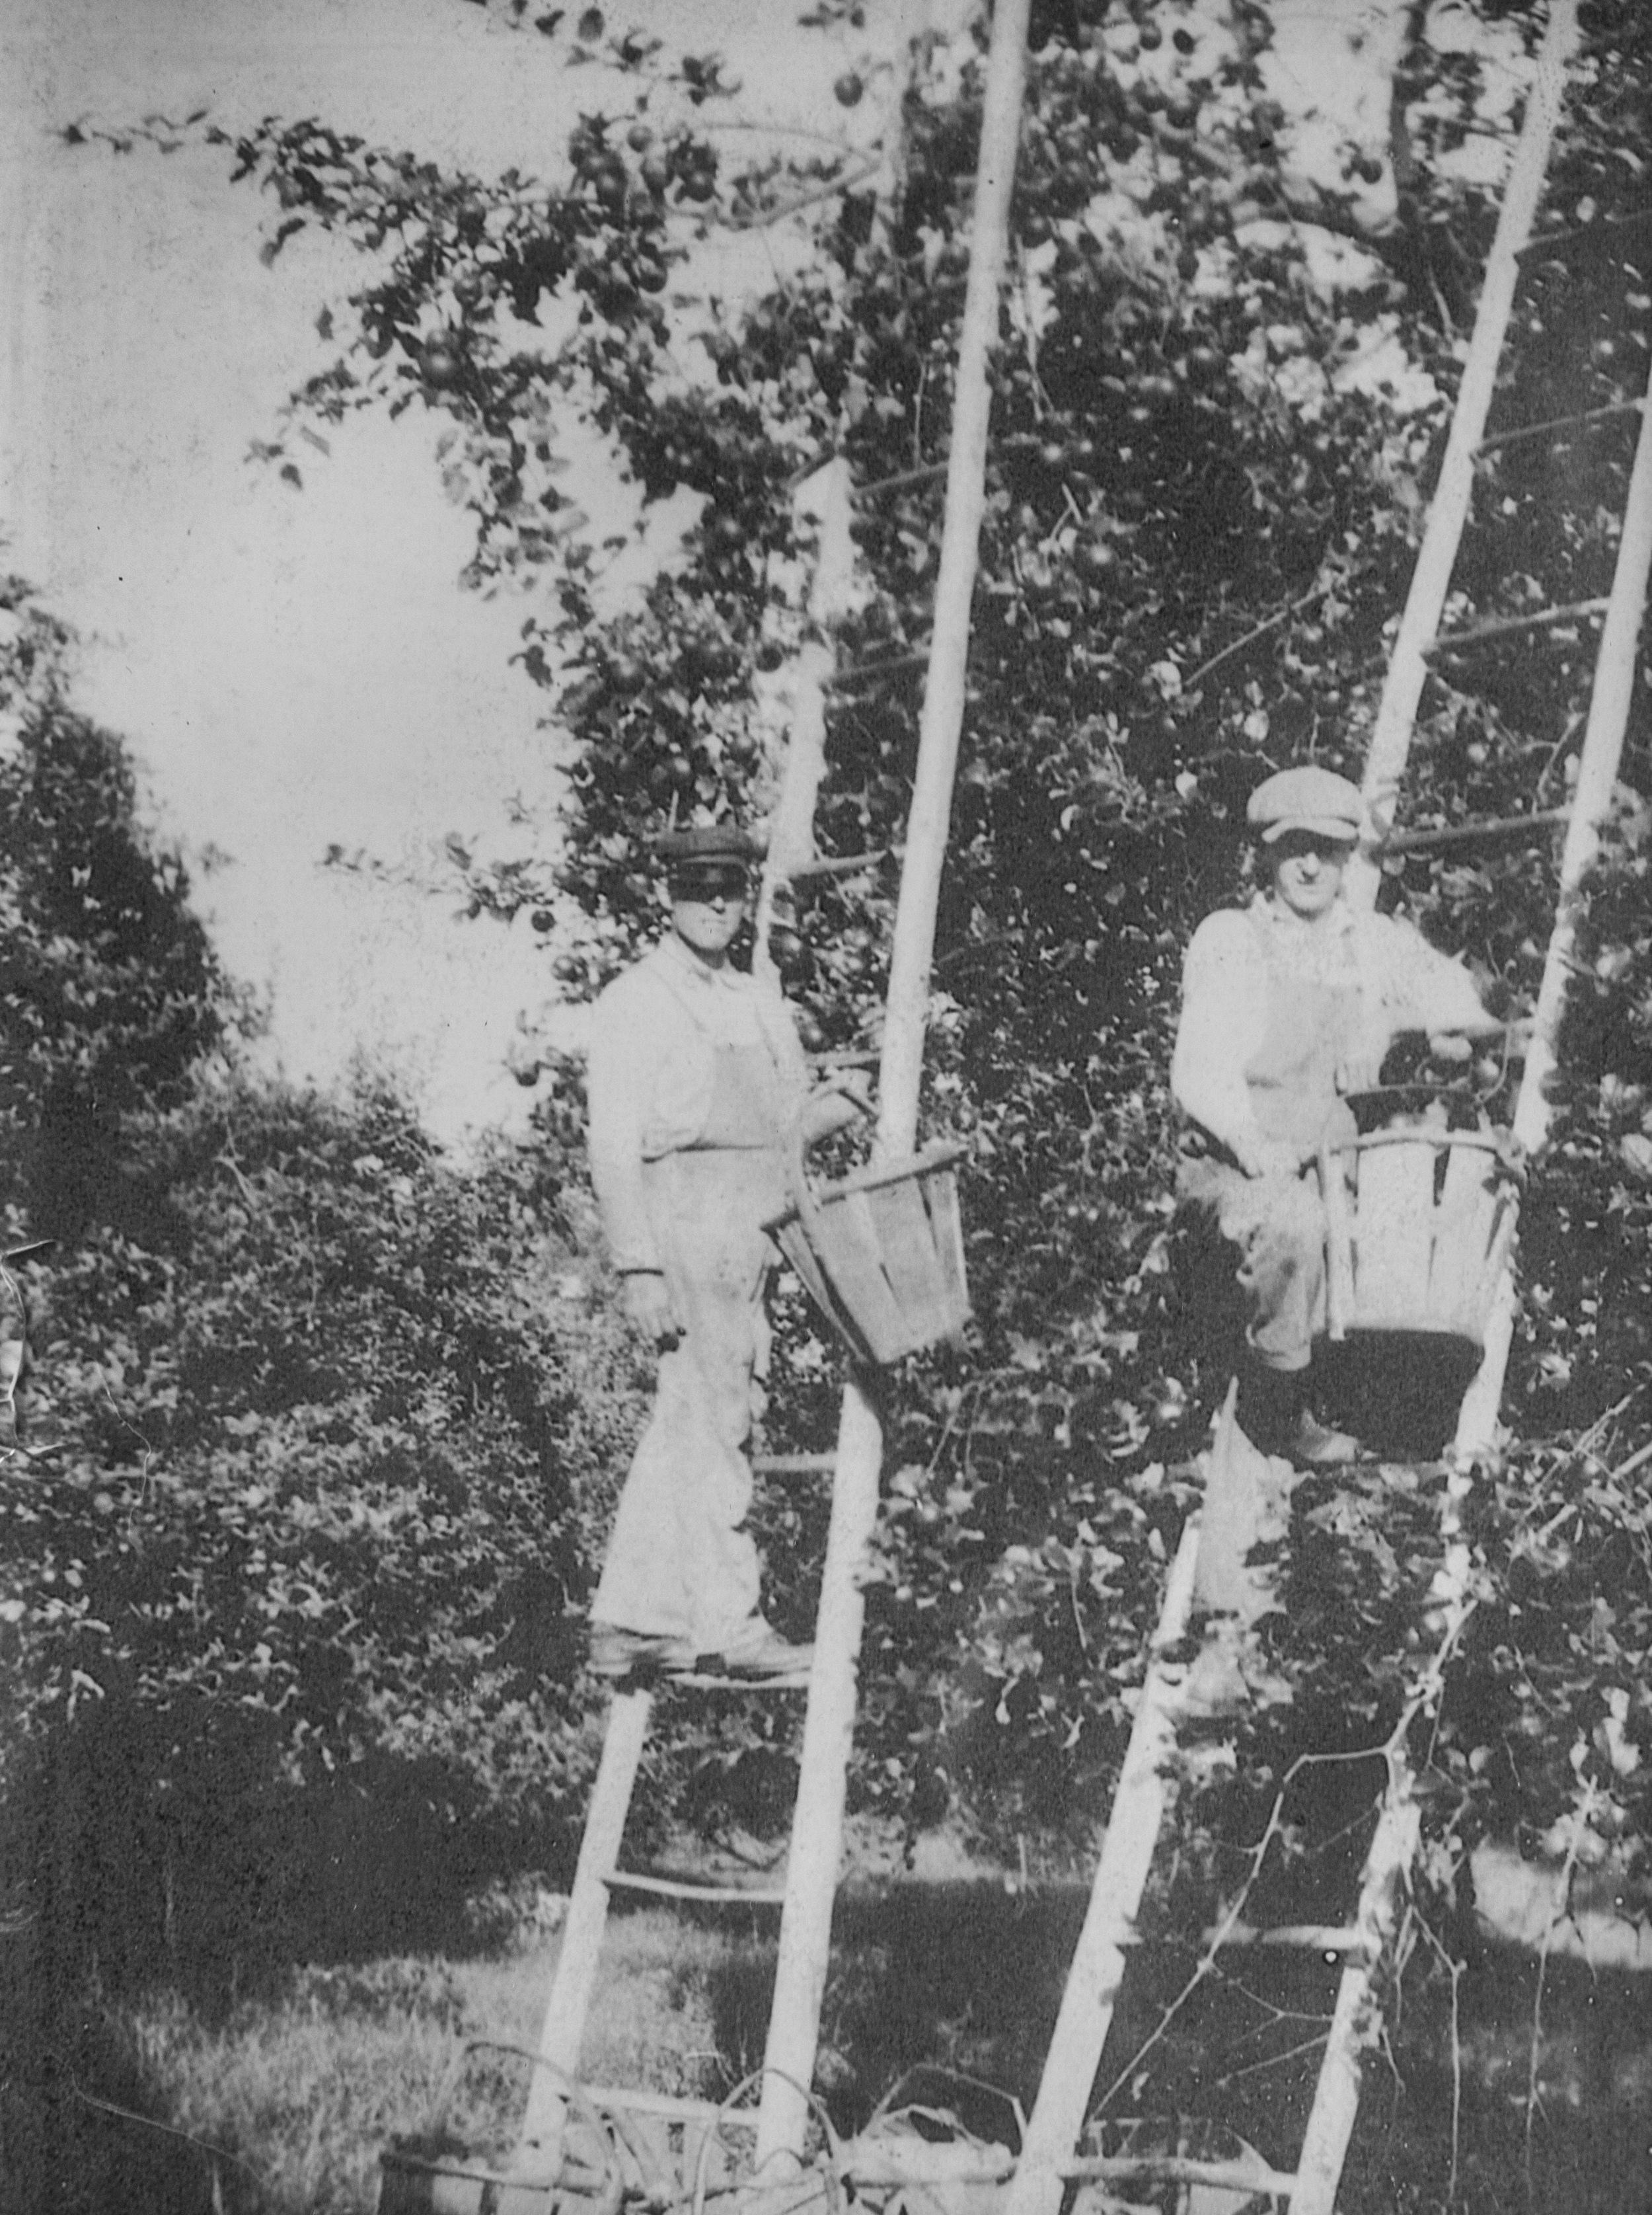 D.H. Way picking apples in 1915.